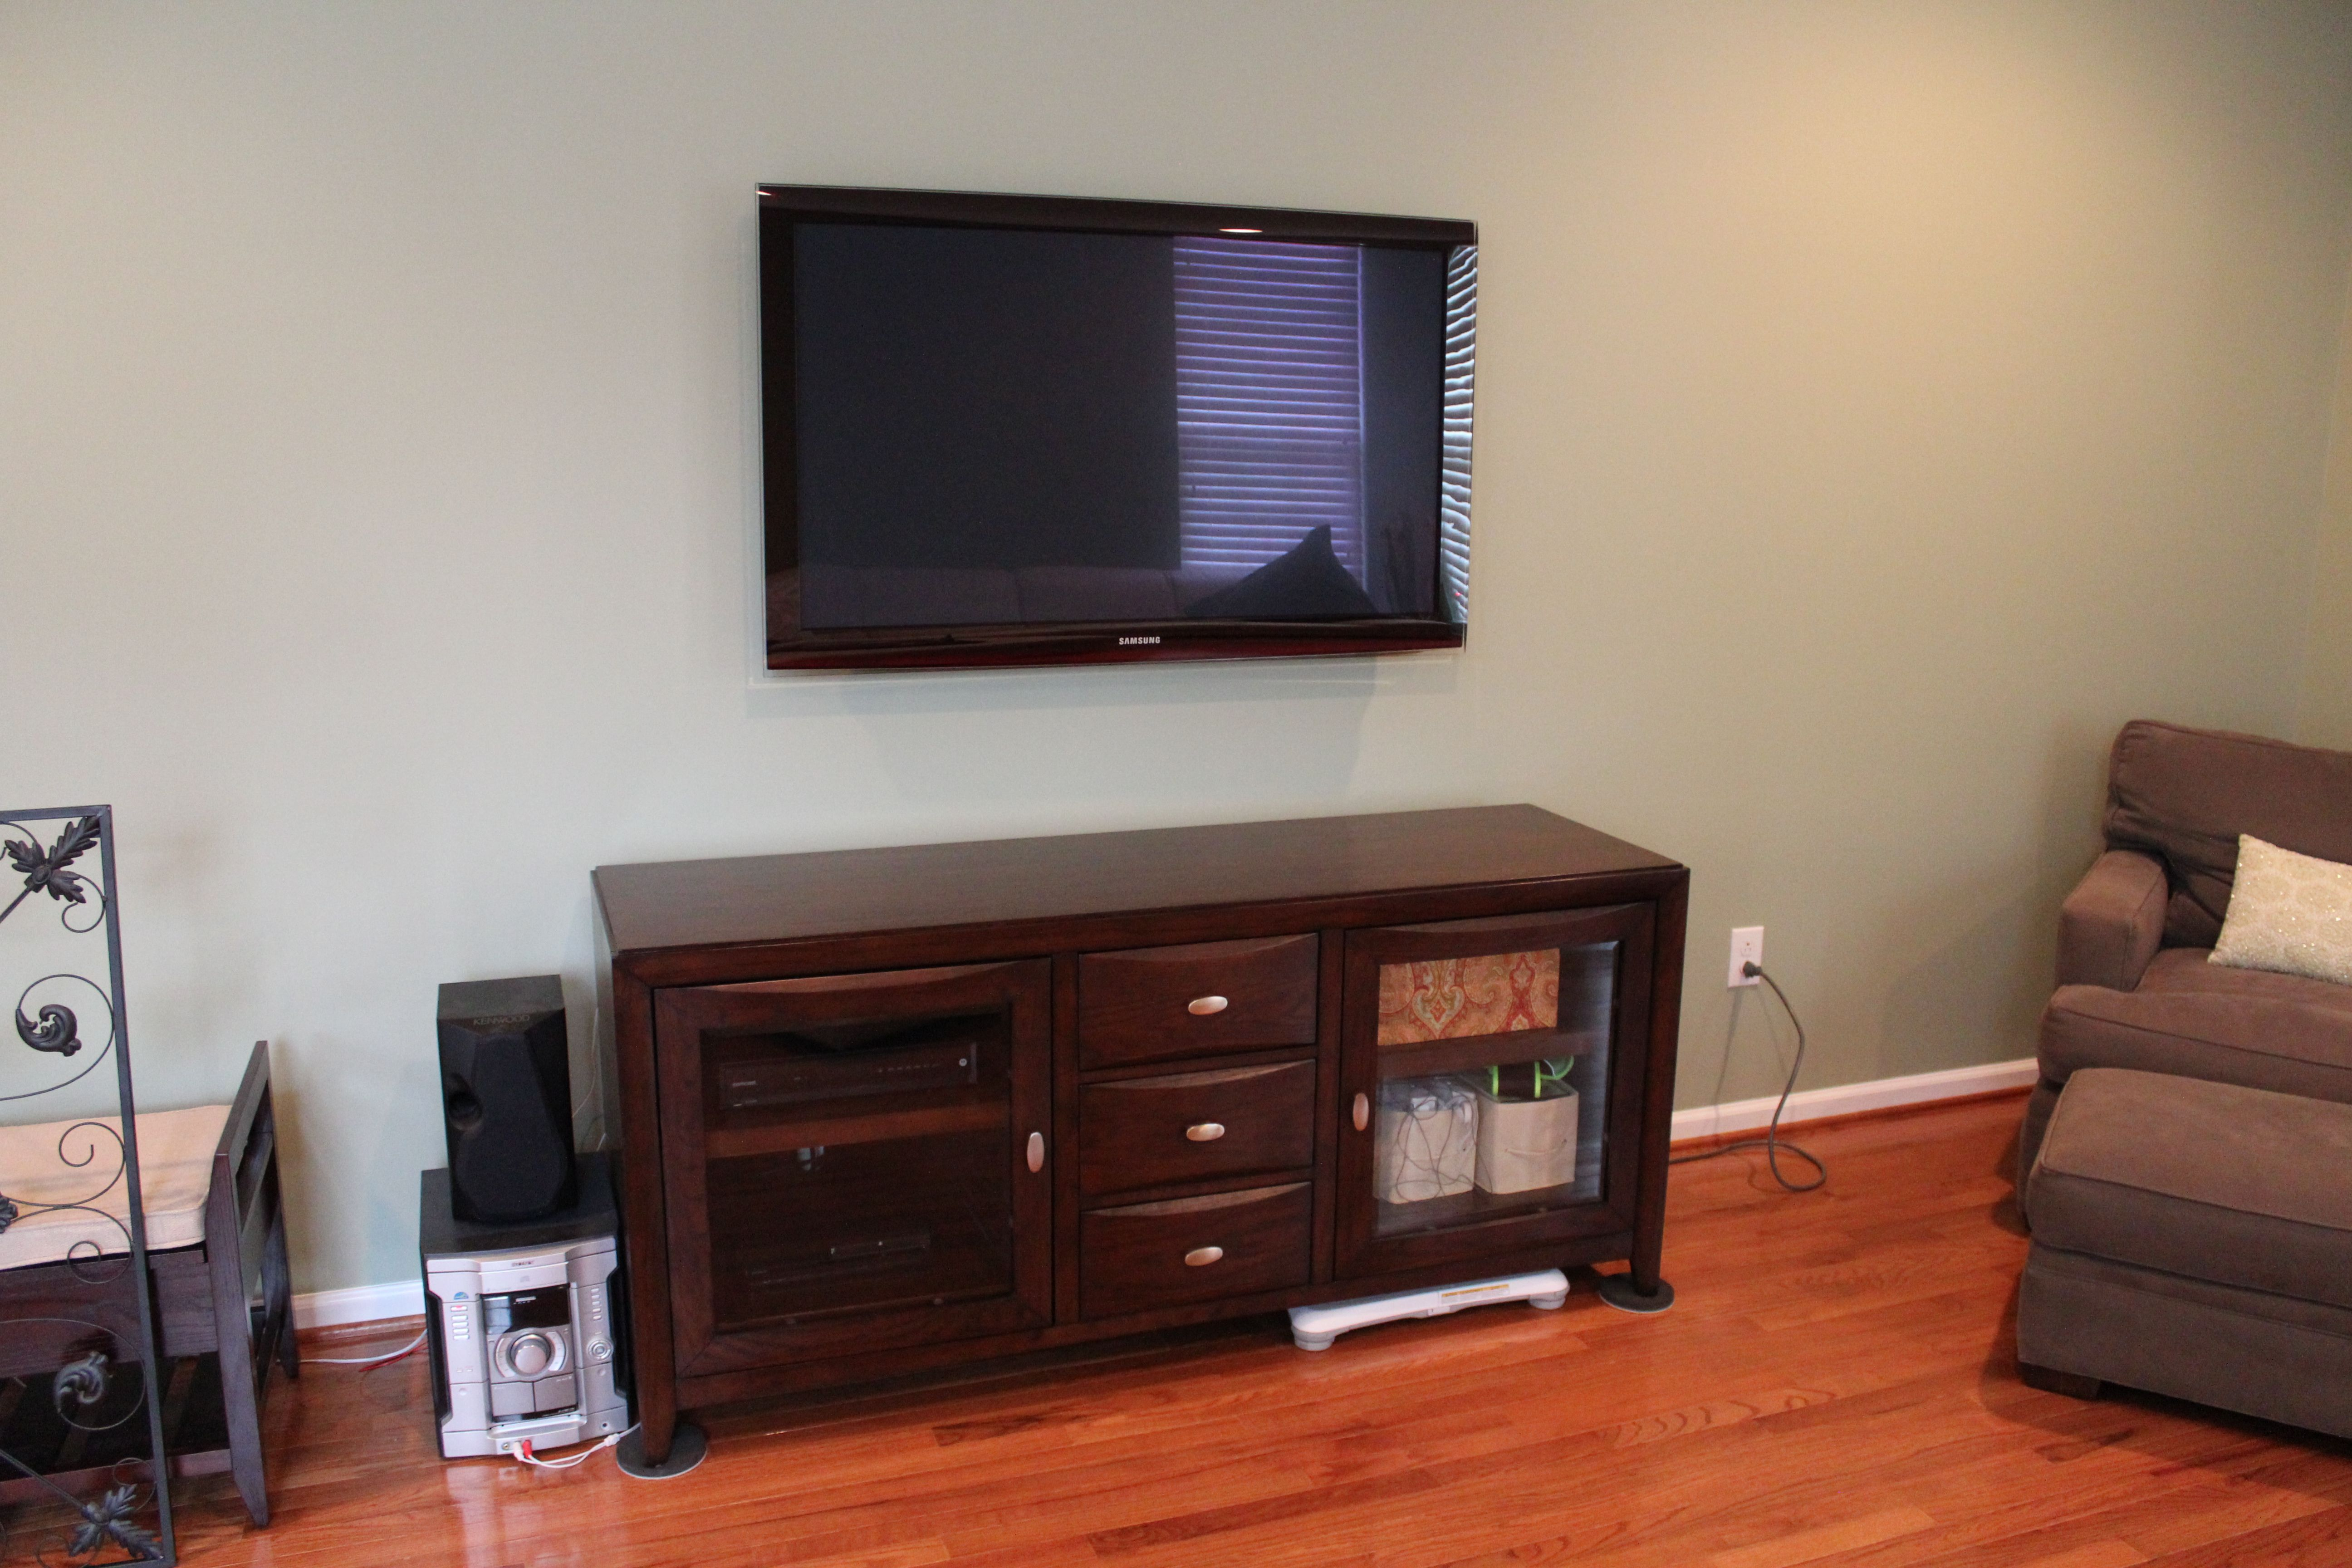 Hide Tv In Wall Tv On Wall Tv On Wall Ideas Wall Shelves Design Tv Shelving Units